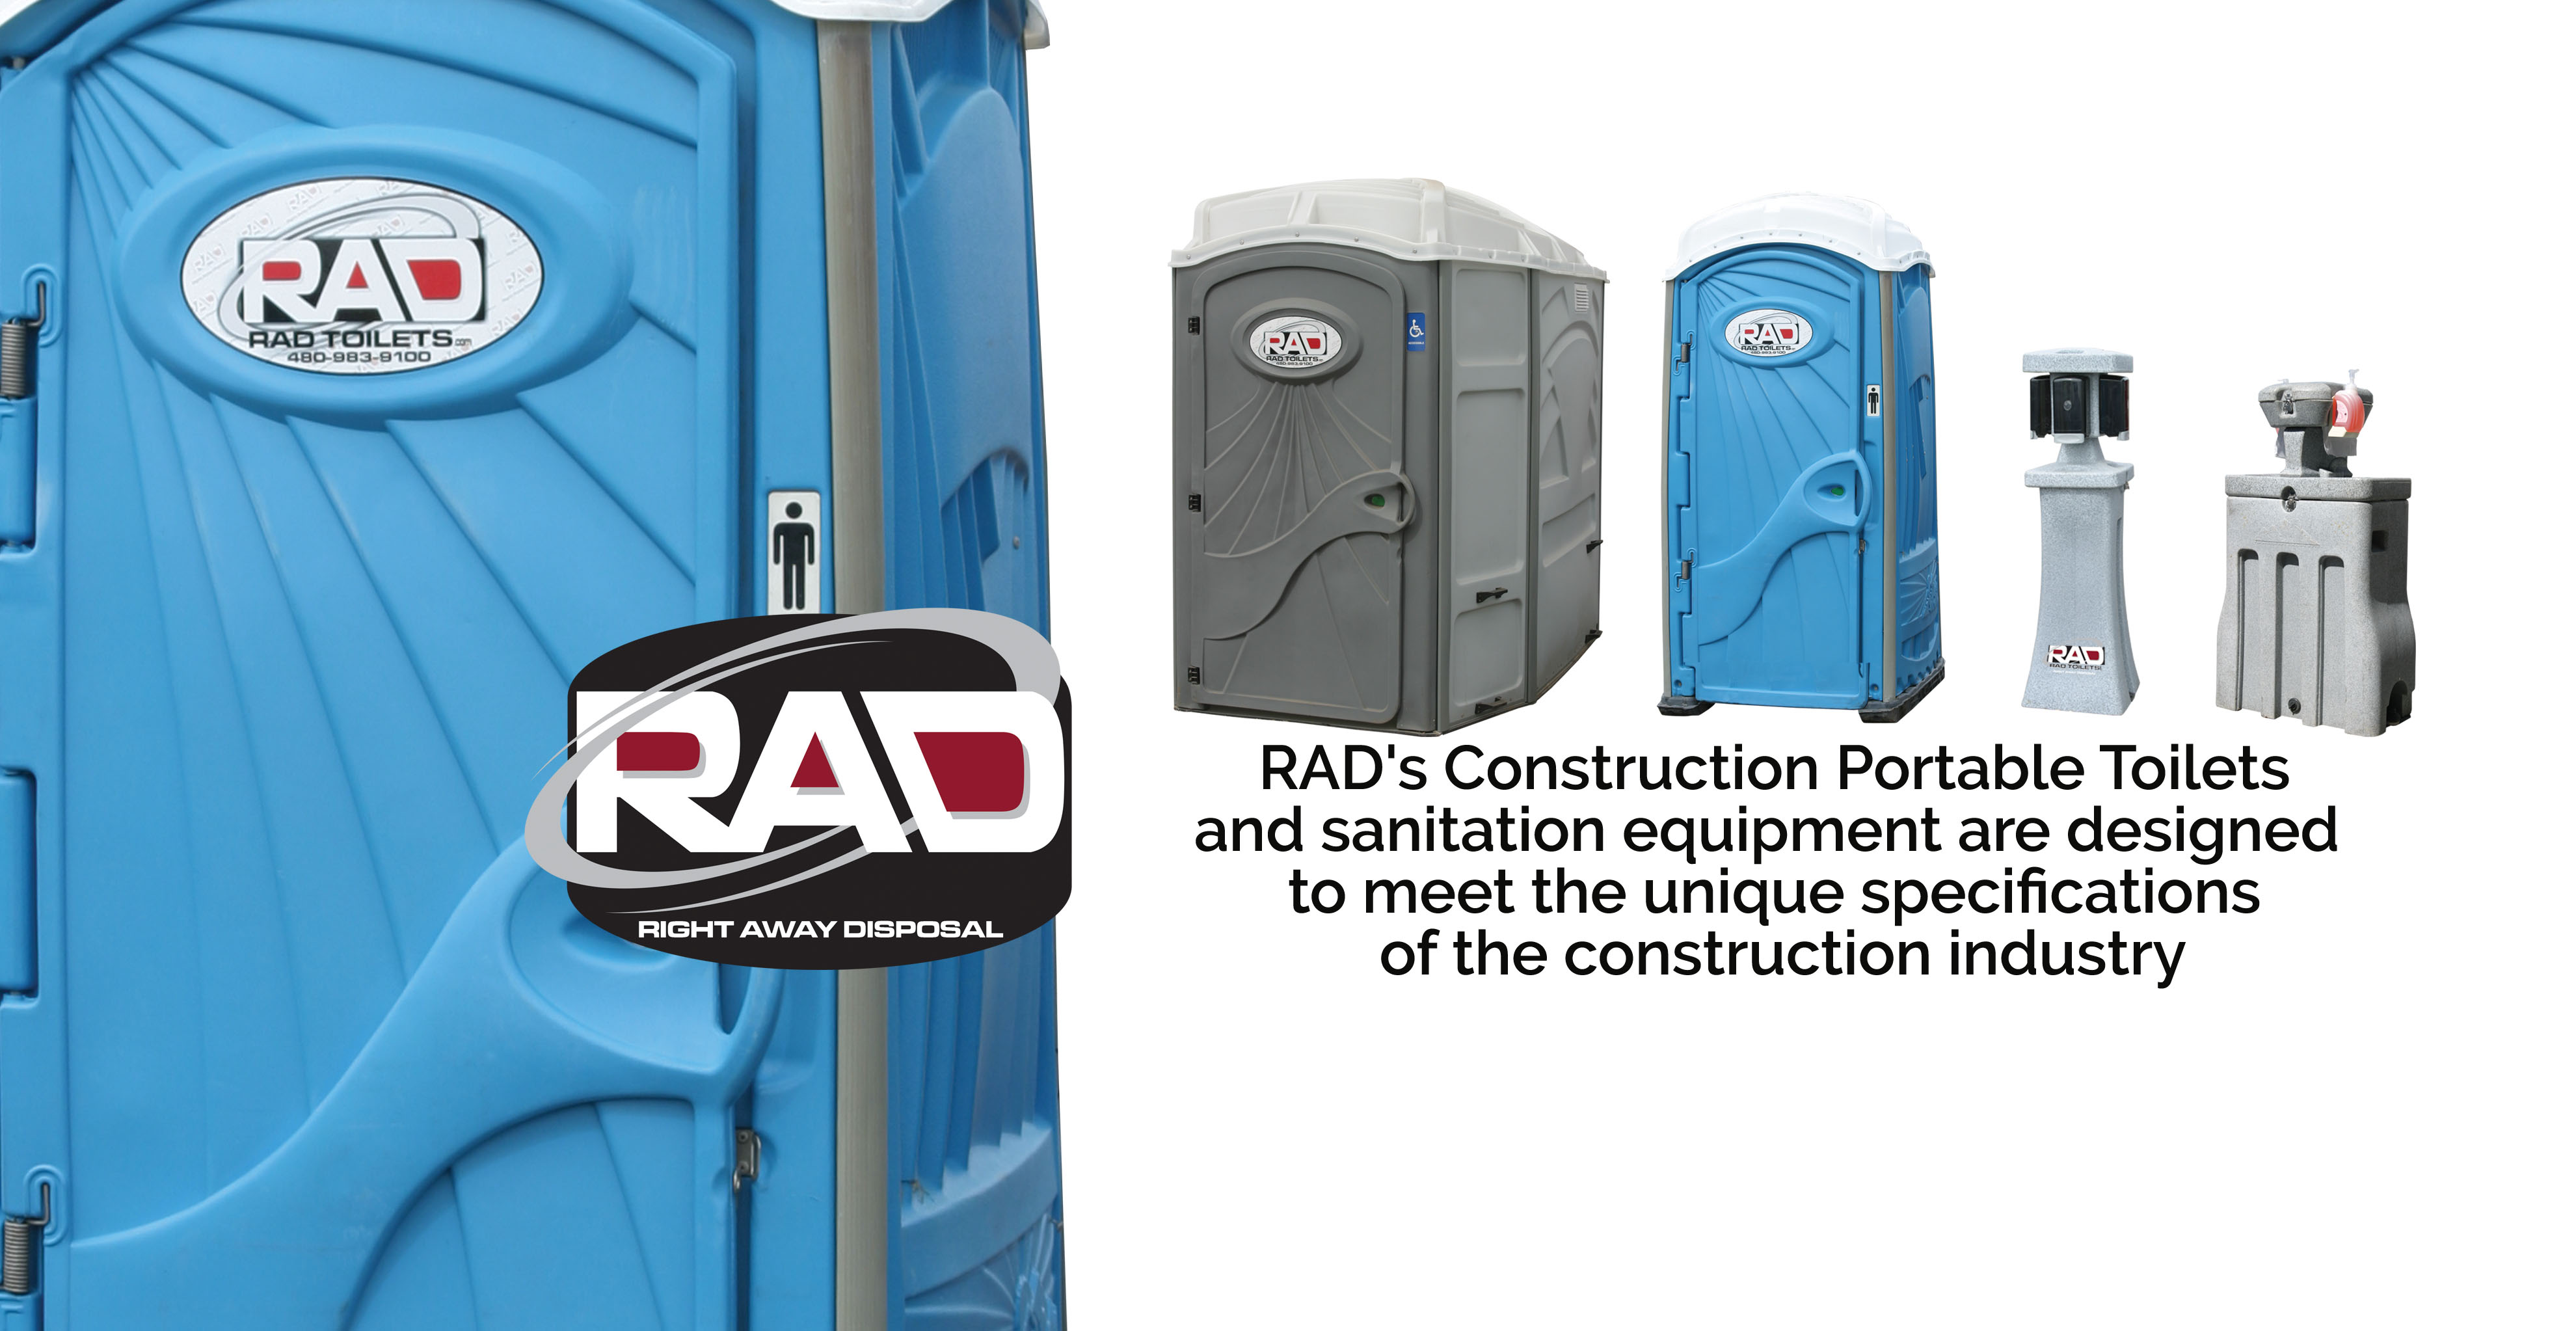 R.A.D. Dumpsters - Right Away Disposal RAD